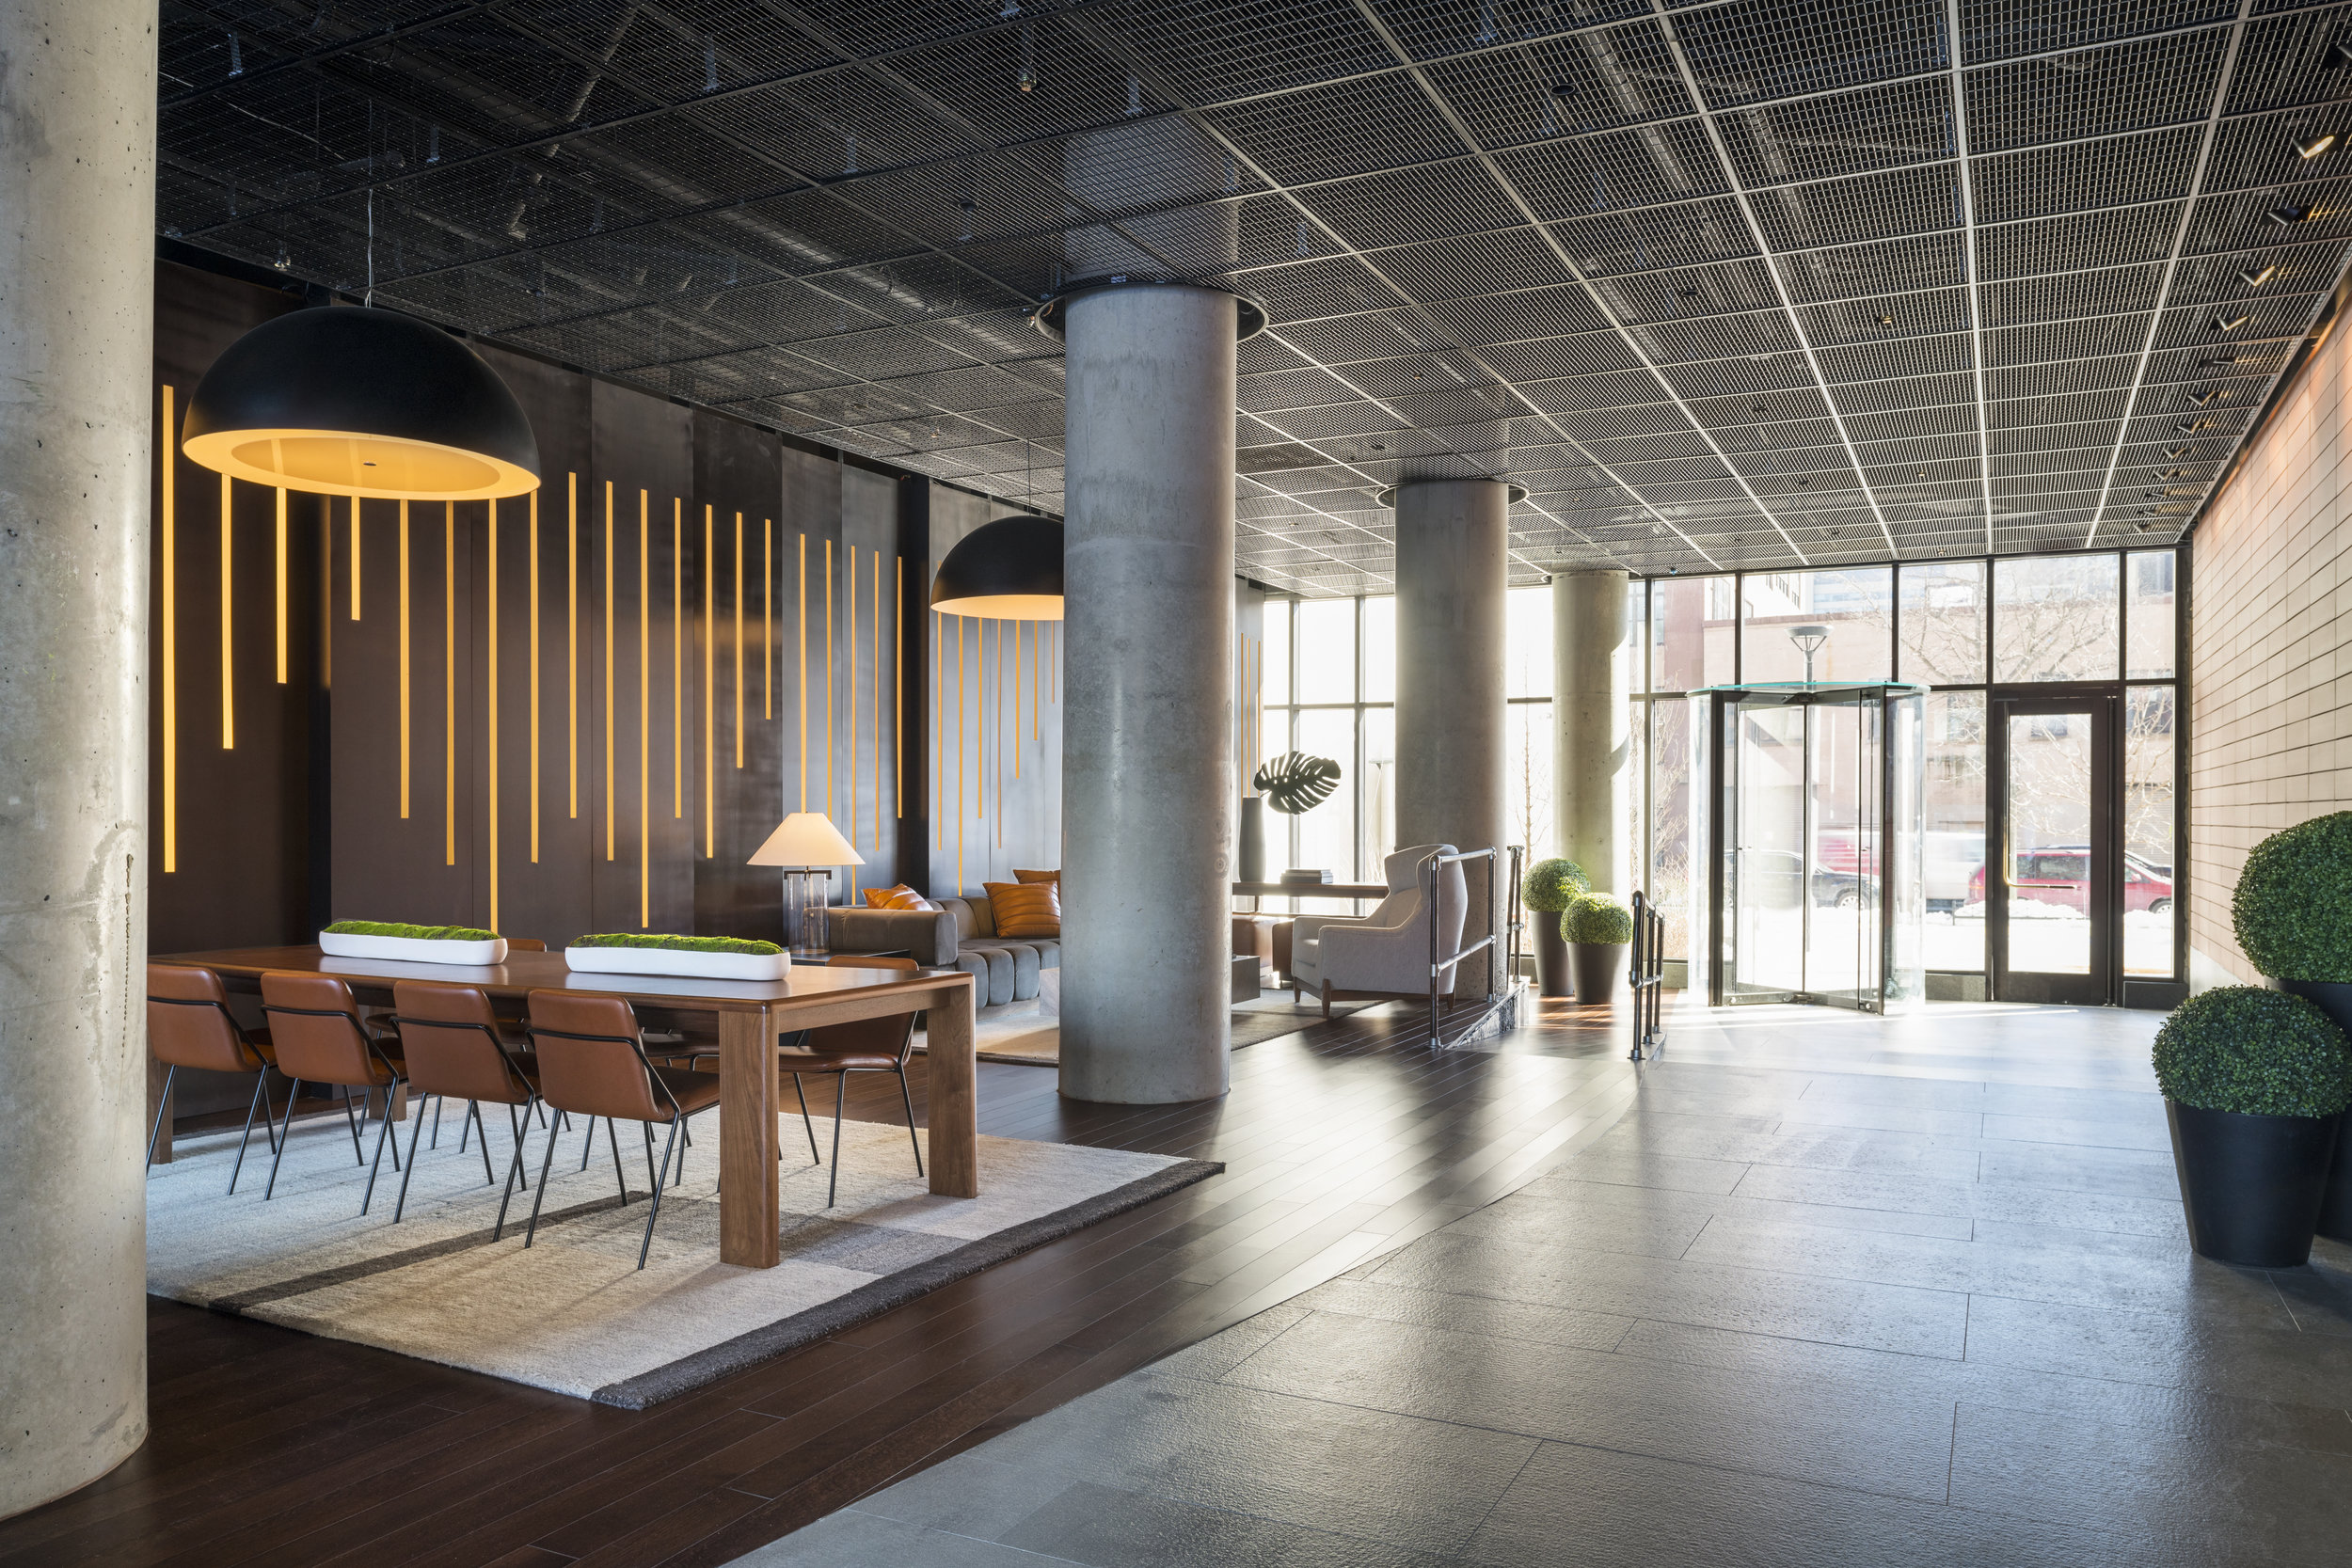 Get A First Look At The Amberly's Newly Revealed Penthouse Lounge And Amenities In Downtown Brooklyn